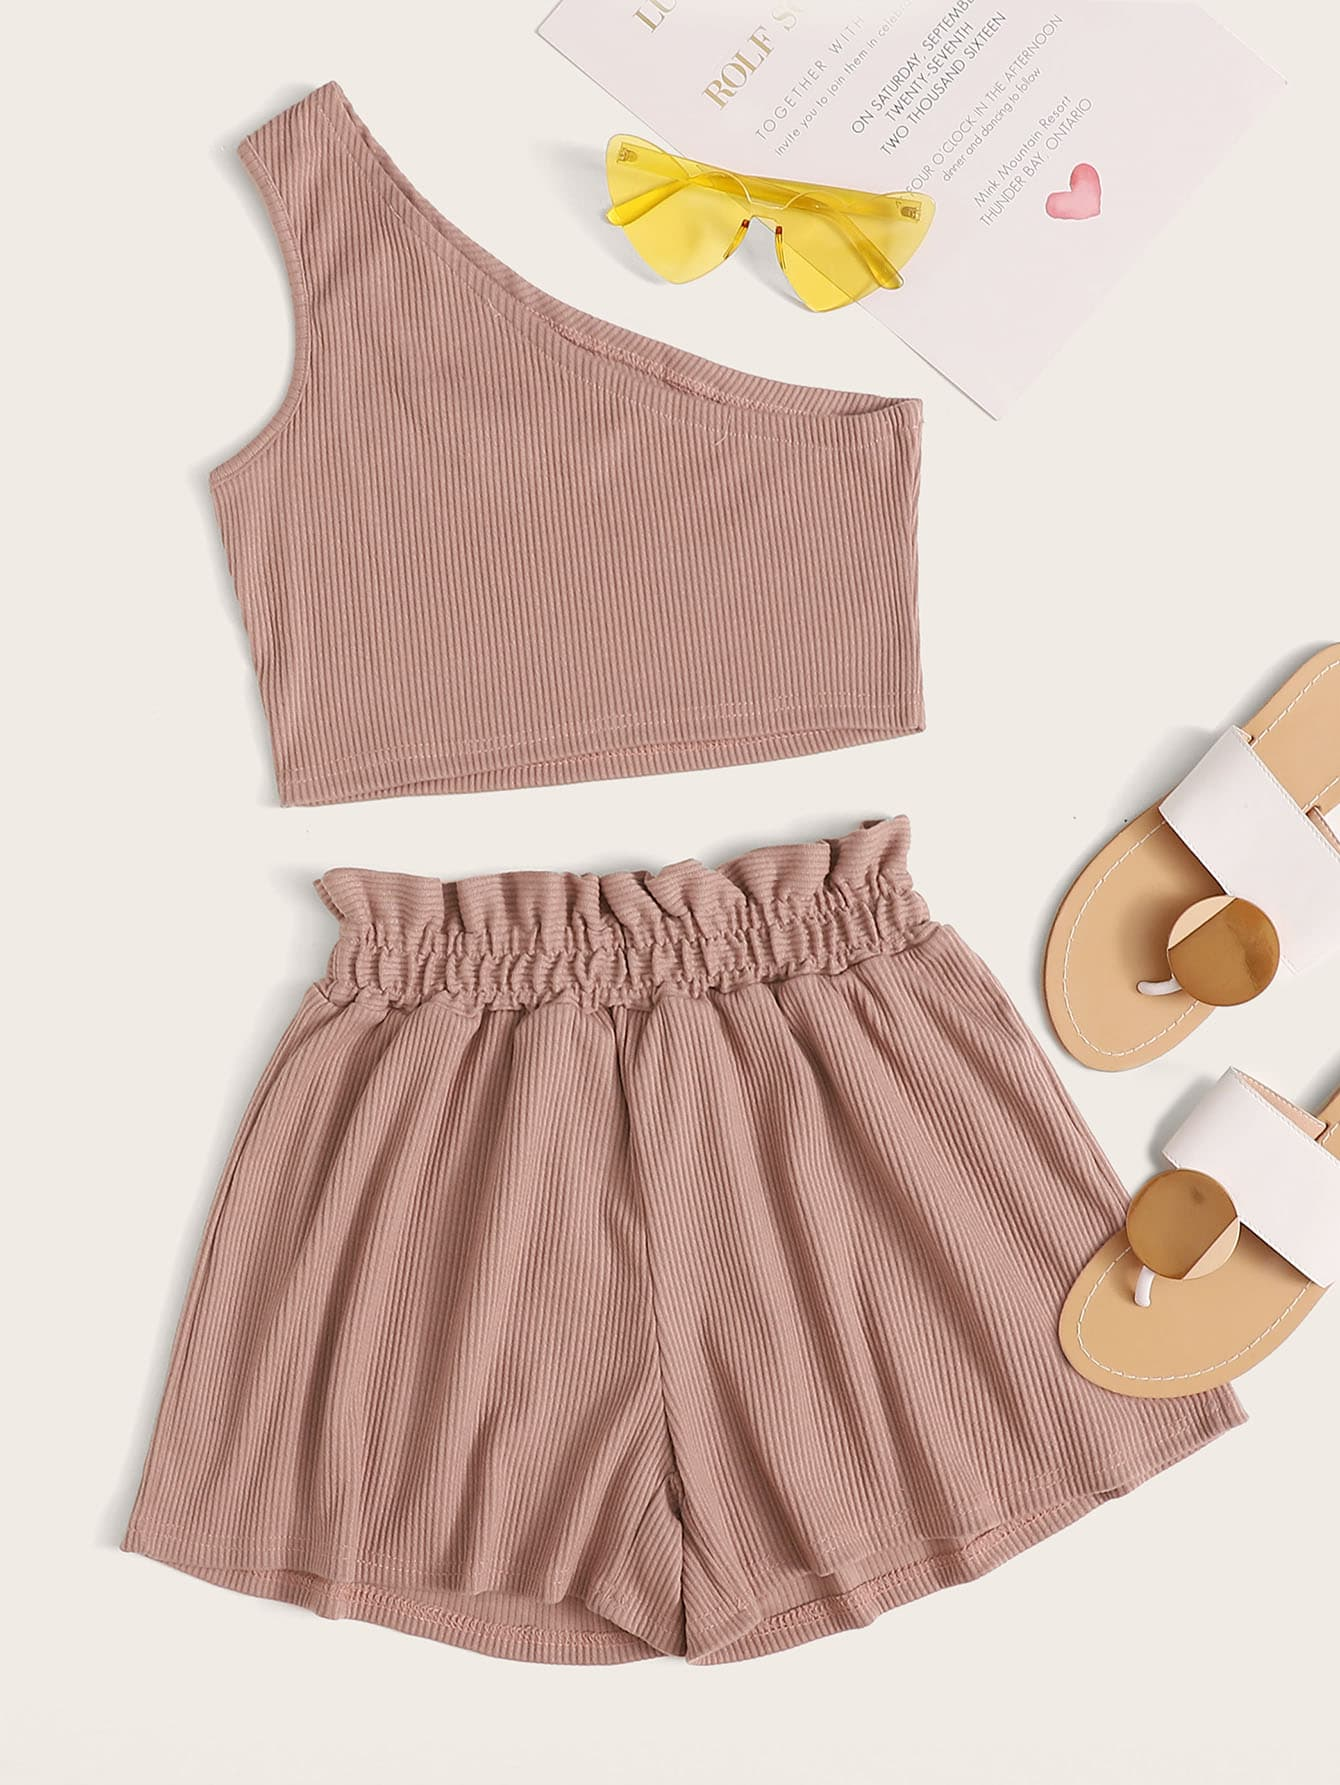 One Shoulder Rib-knit Top & Paperbag Waist Shorts - FLJ CORPORATIONS